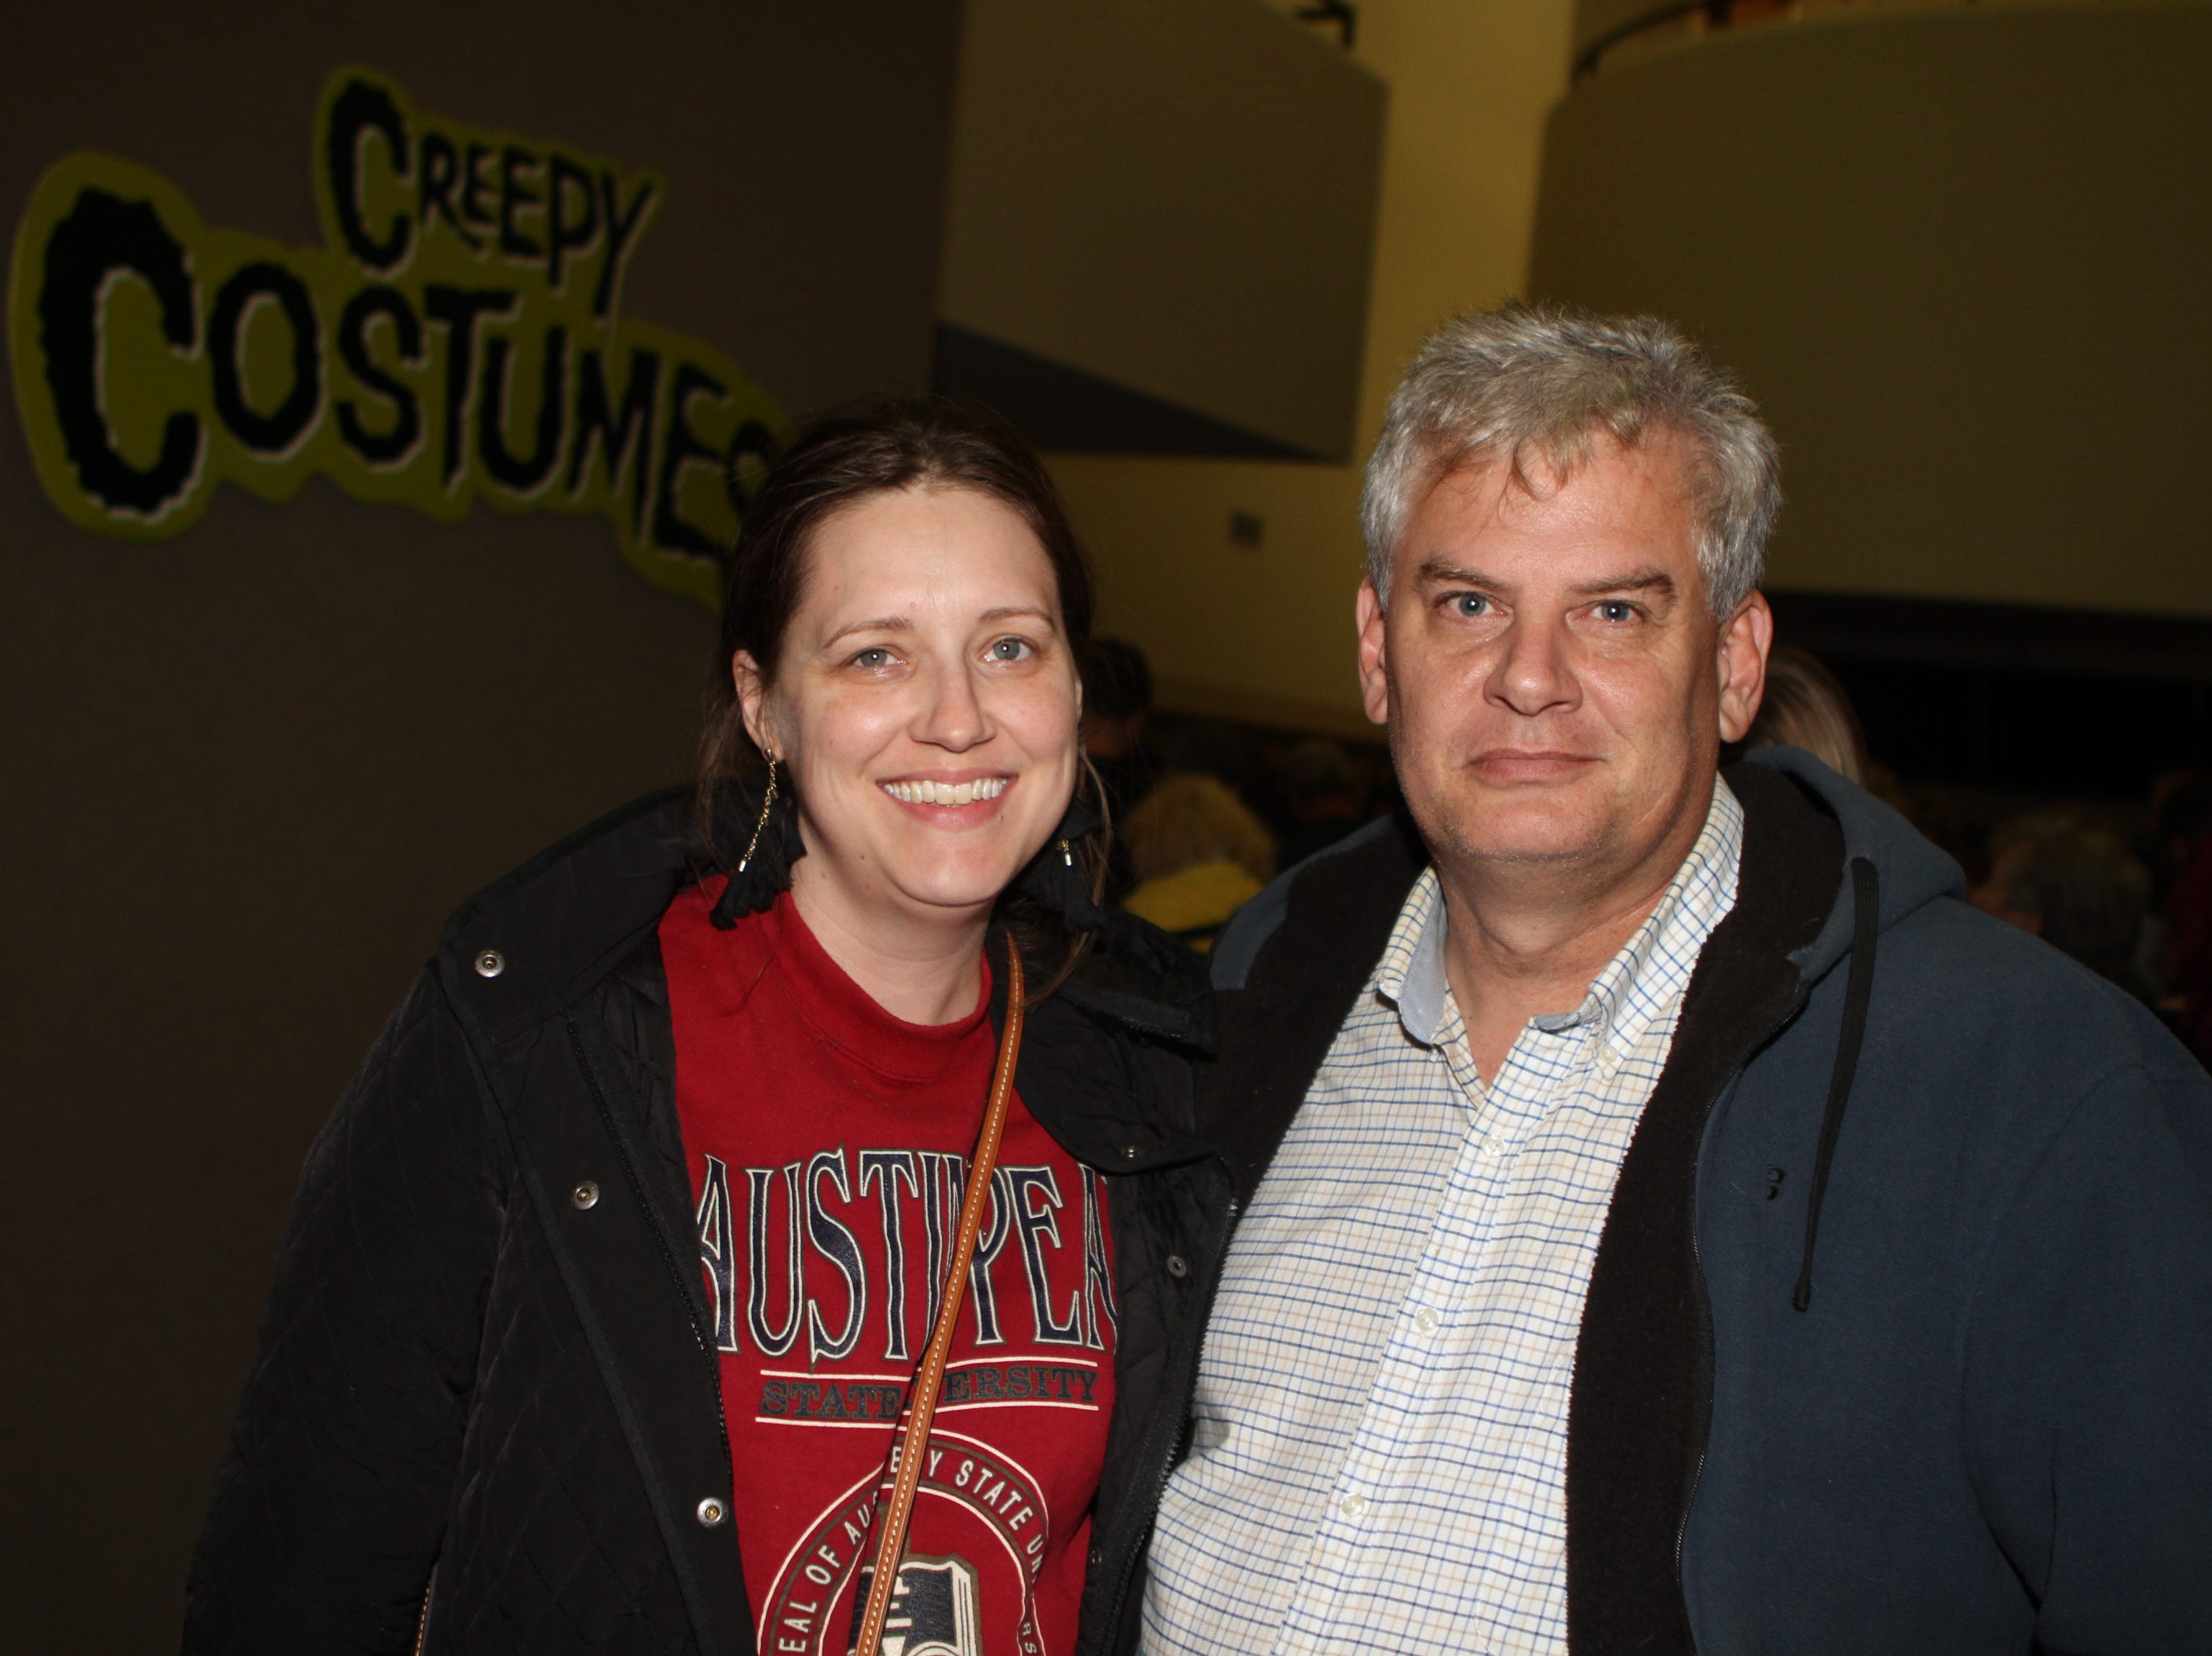 Heather and David Smith at this year's APSU Percussion Ensemble Halloween Concert on Friday, October 26, 2018.